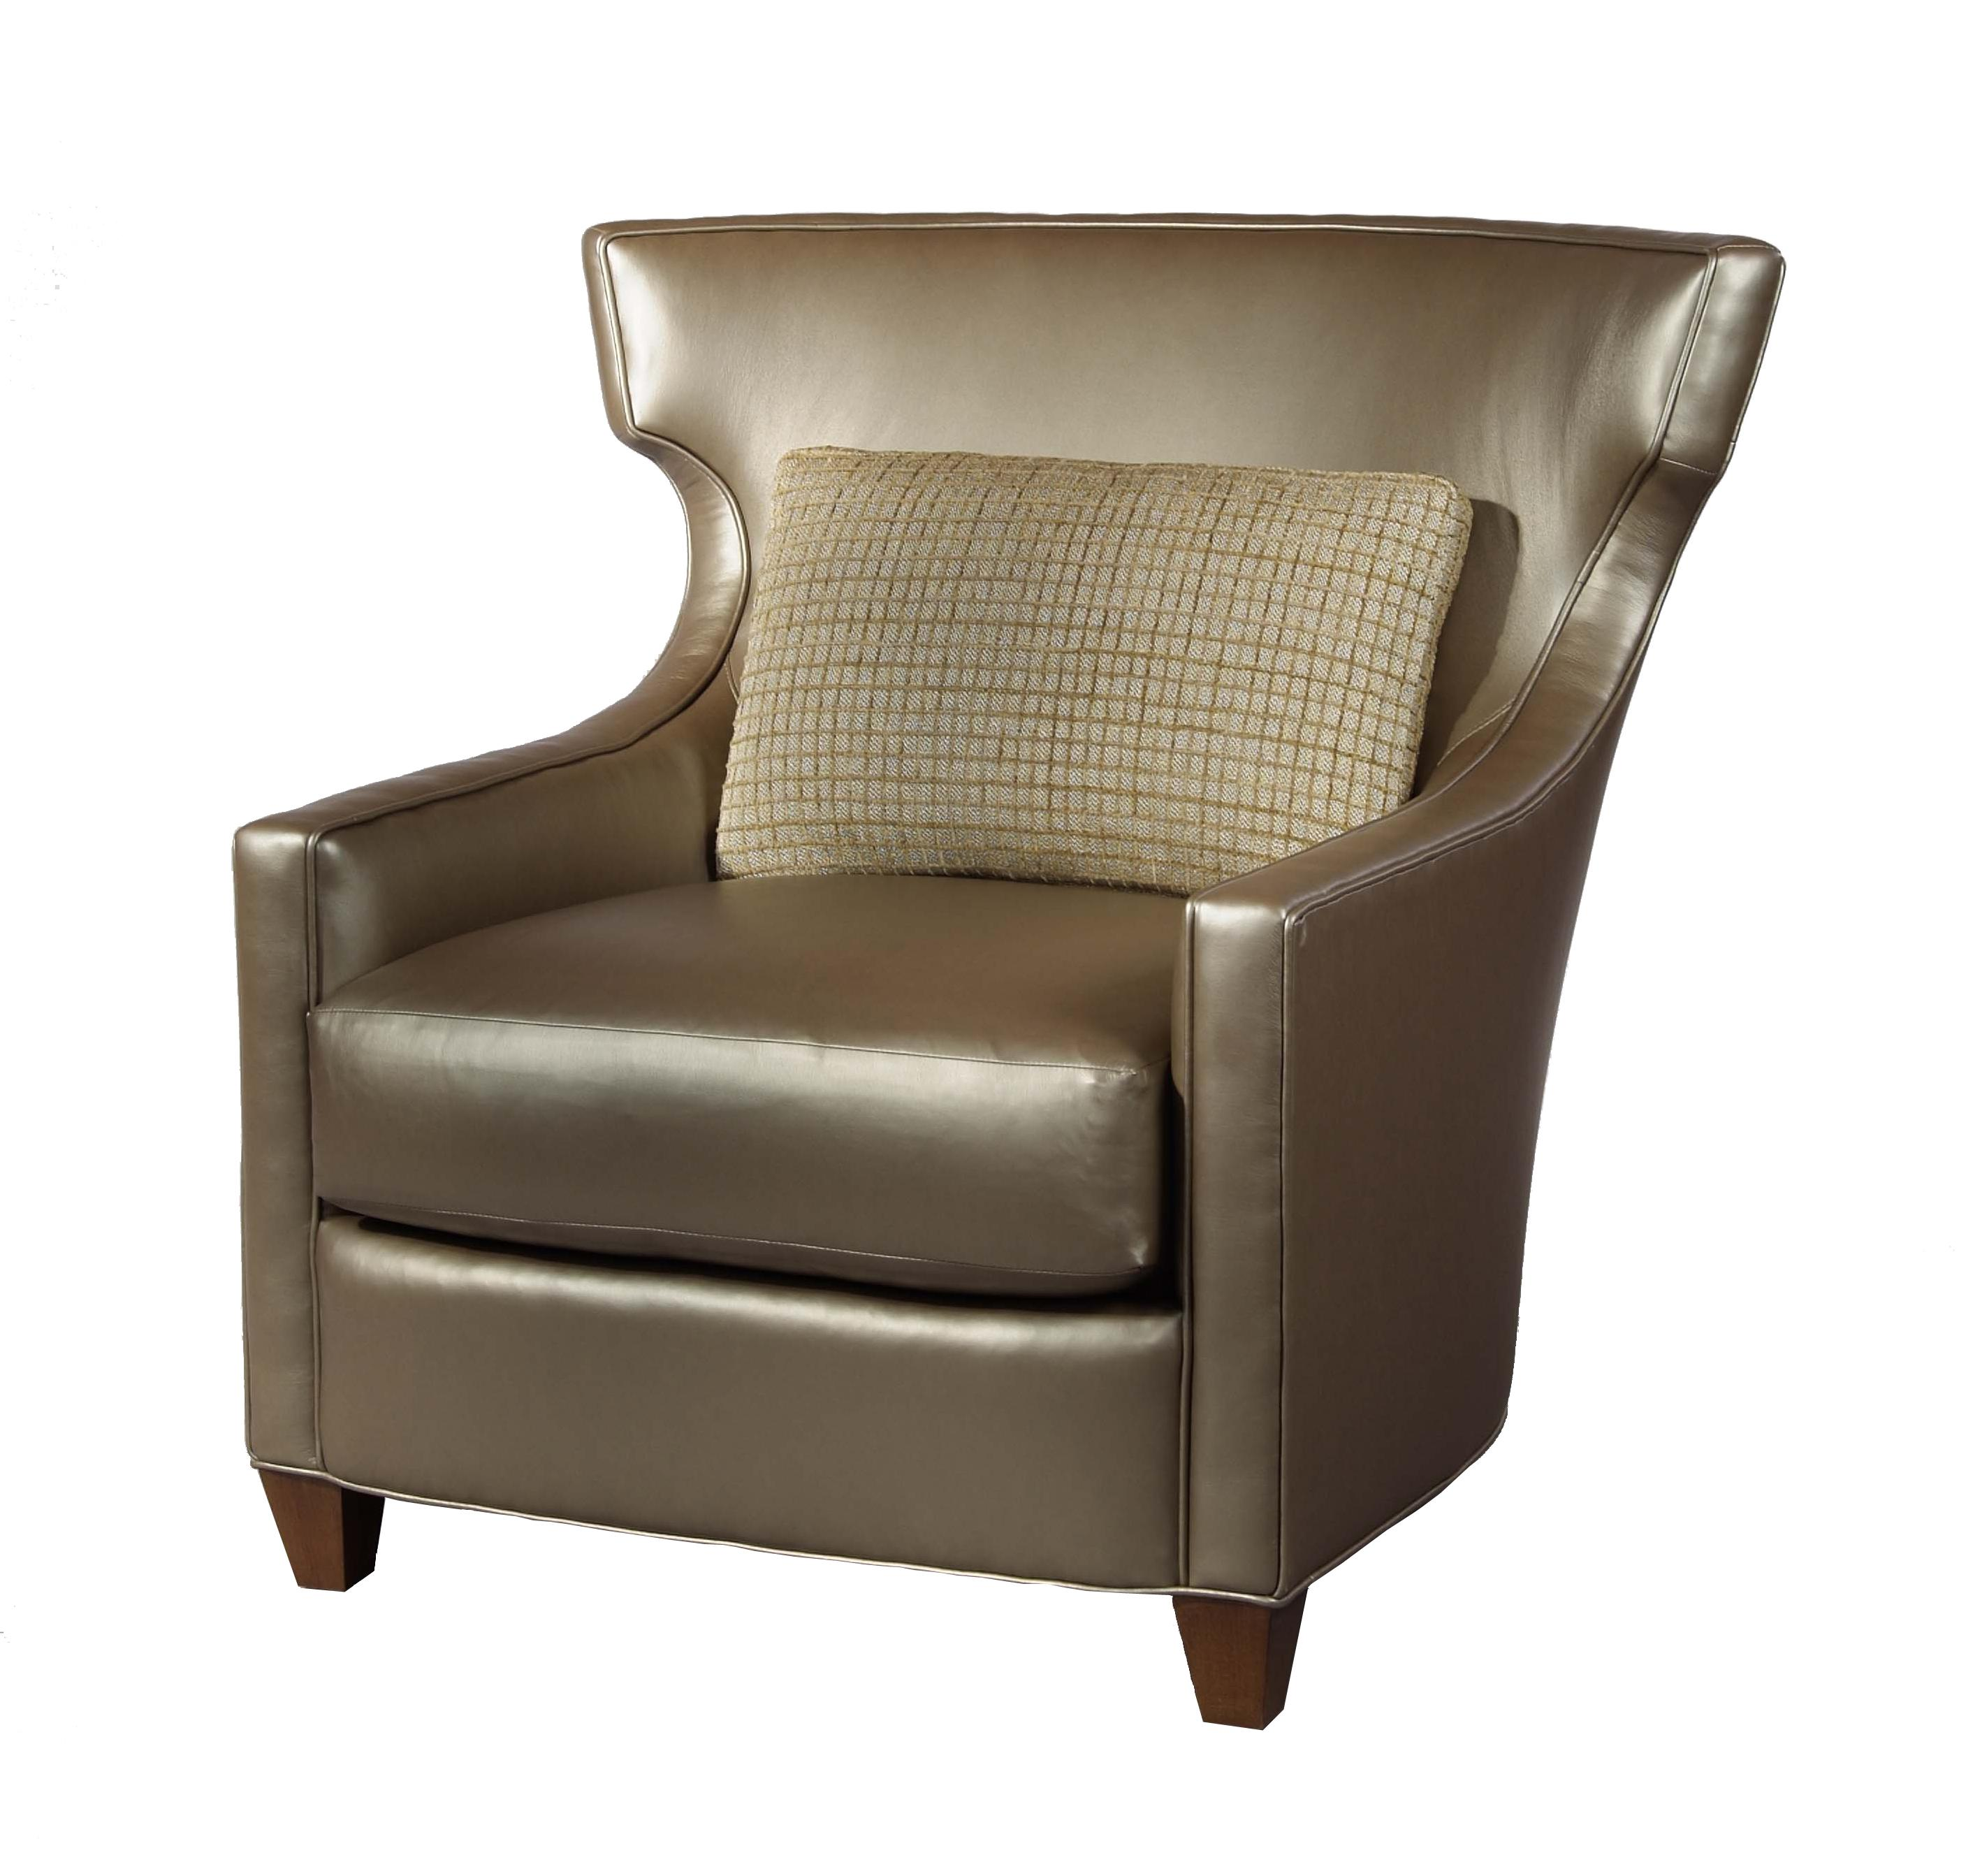 Studio Essentials Upholstery Hansen Wing Chair by Century at Alison Craig Home Furnishings